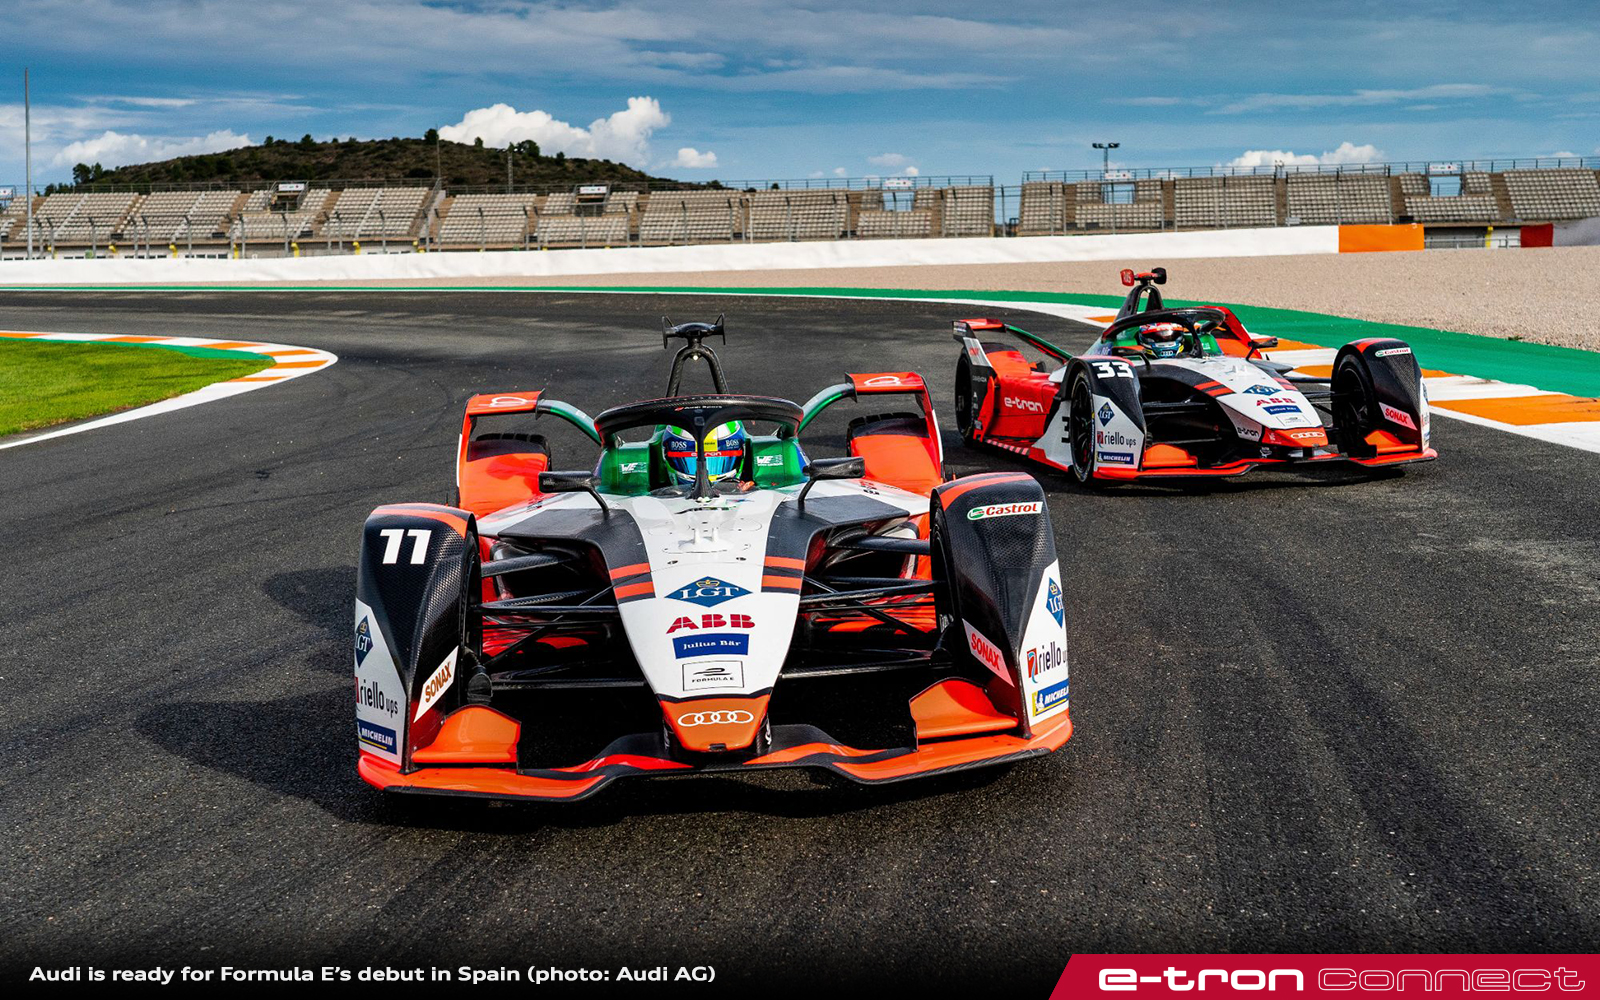 Audi is Ready for Formula E's Debut in Spain